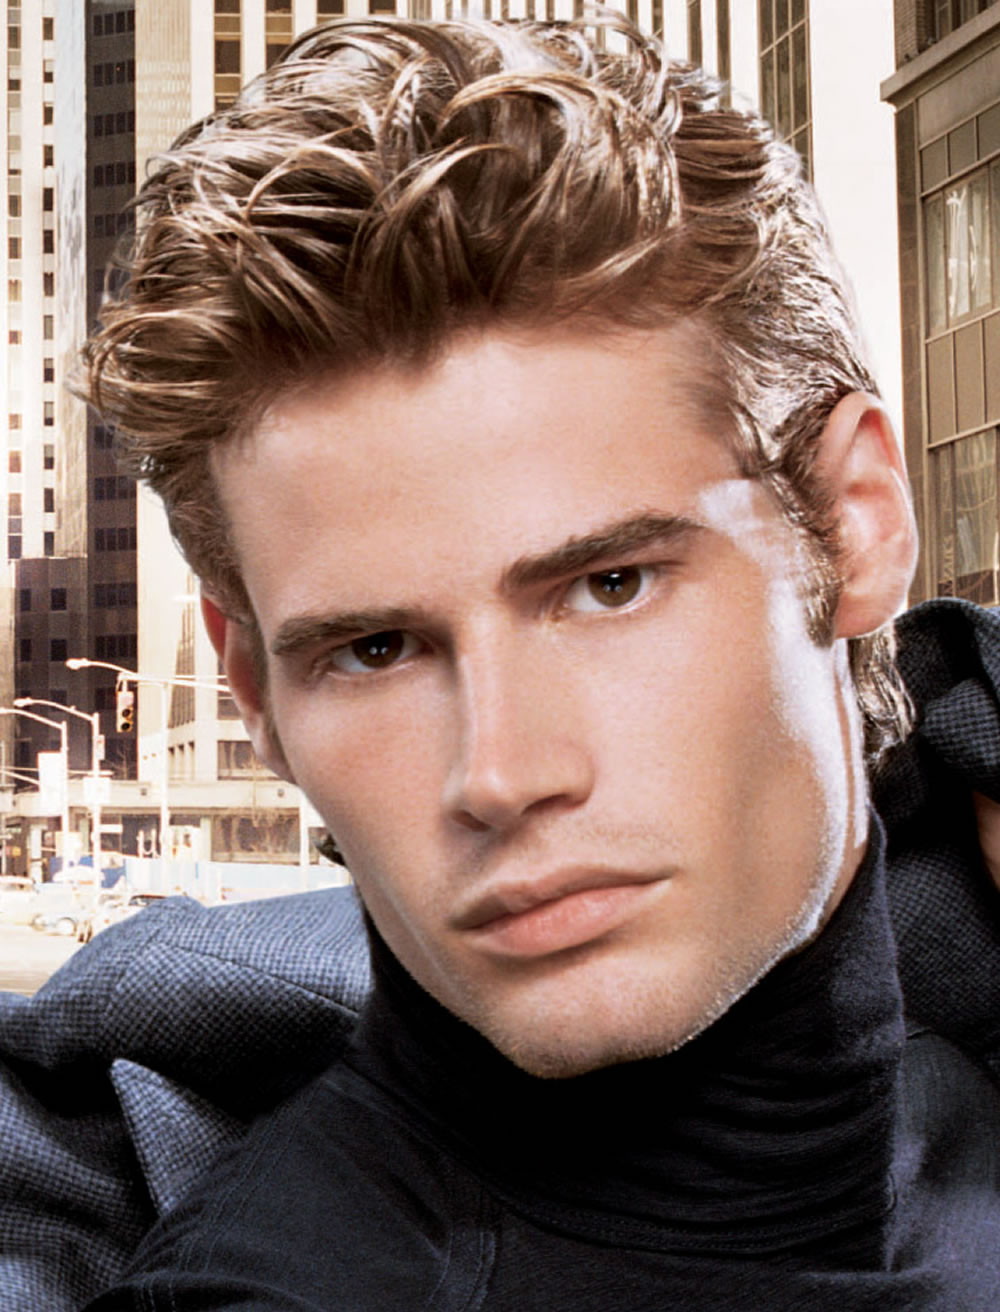 Best Male Hairstyles  Top 20 Hairstyles for Men 2018 – Best Haircut Ideas for